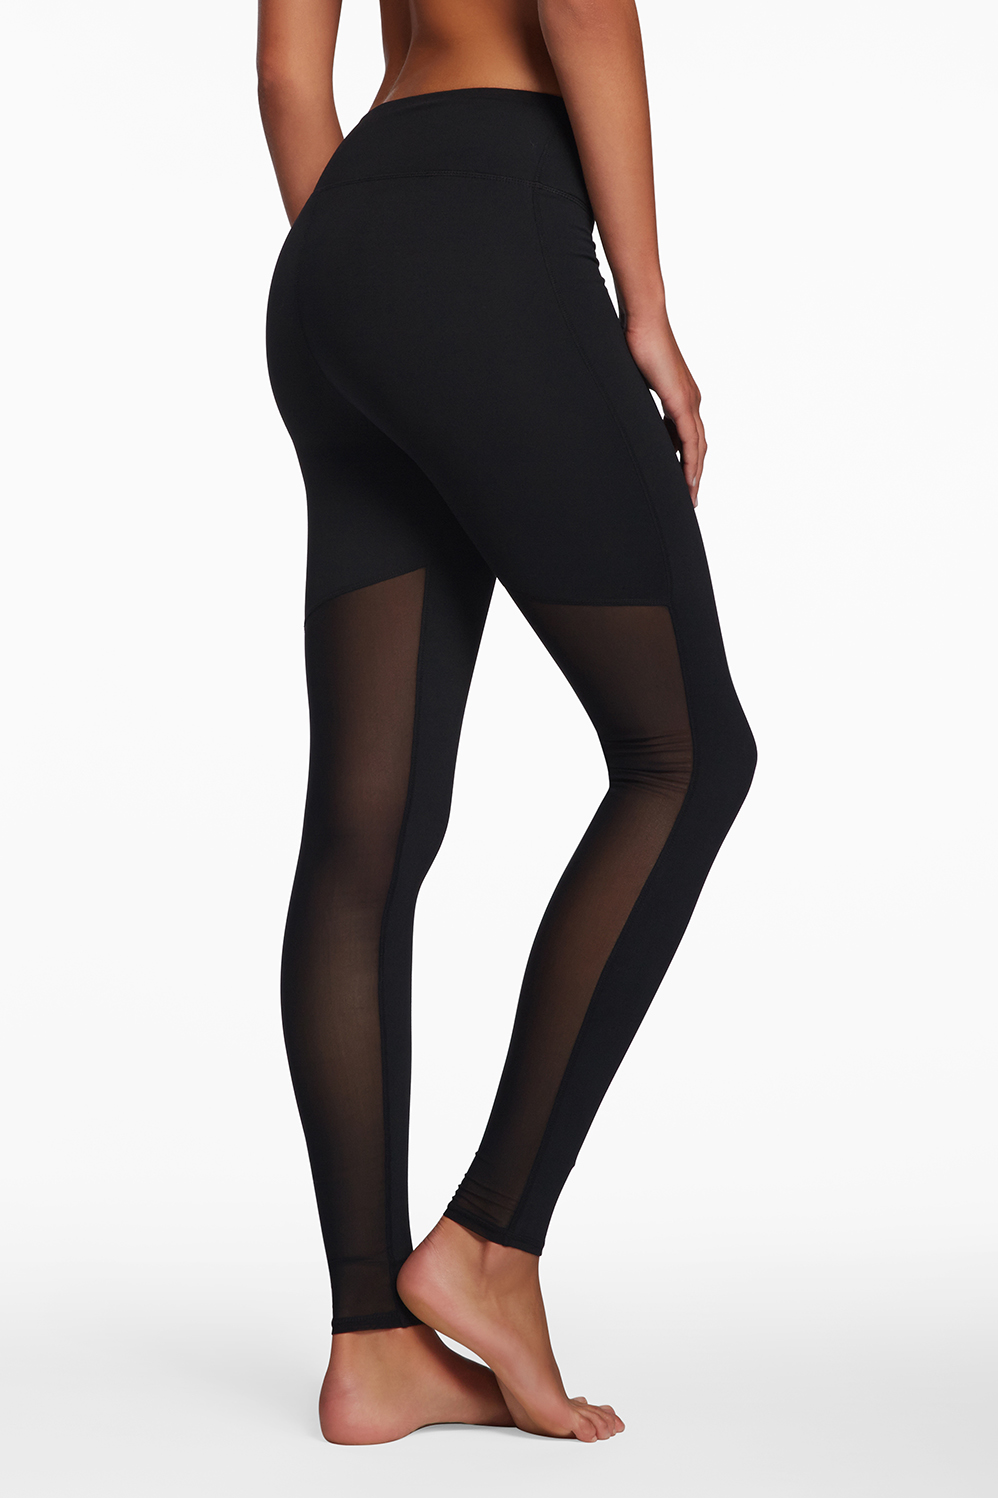 Women's LeggingsApparel, Home & More· New Events Every Day· Hurry, Limited Inventory· New Deals Every Day.